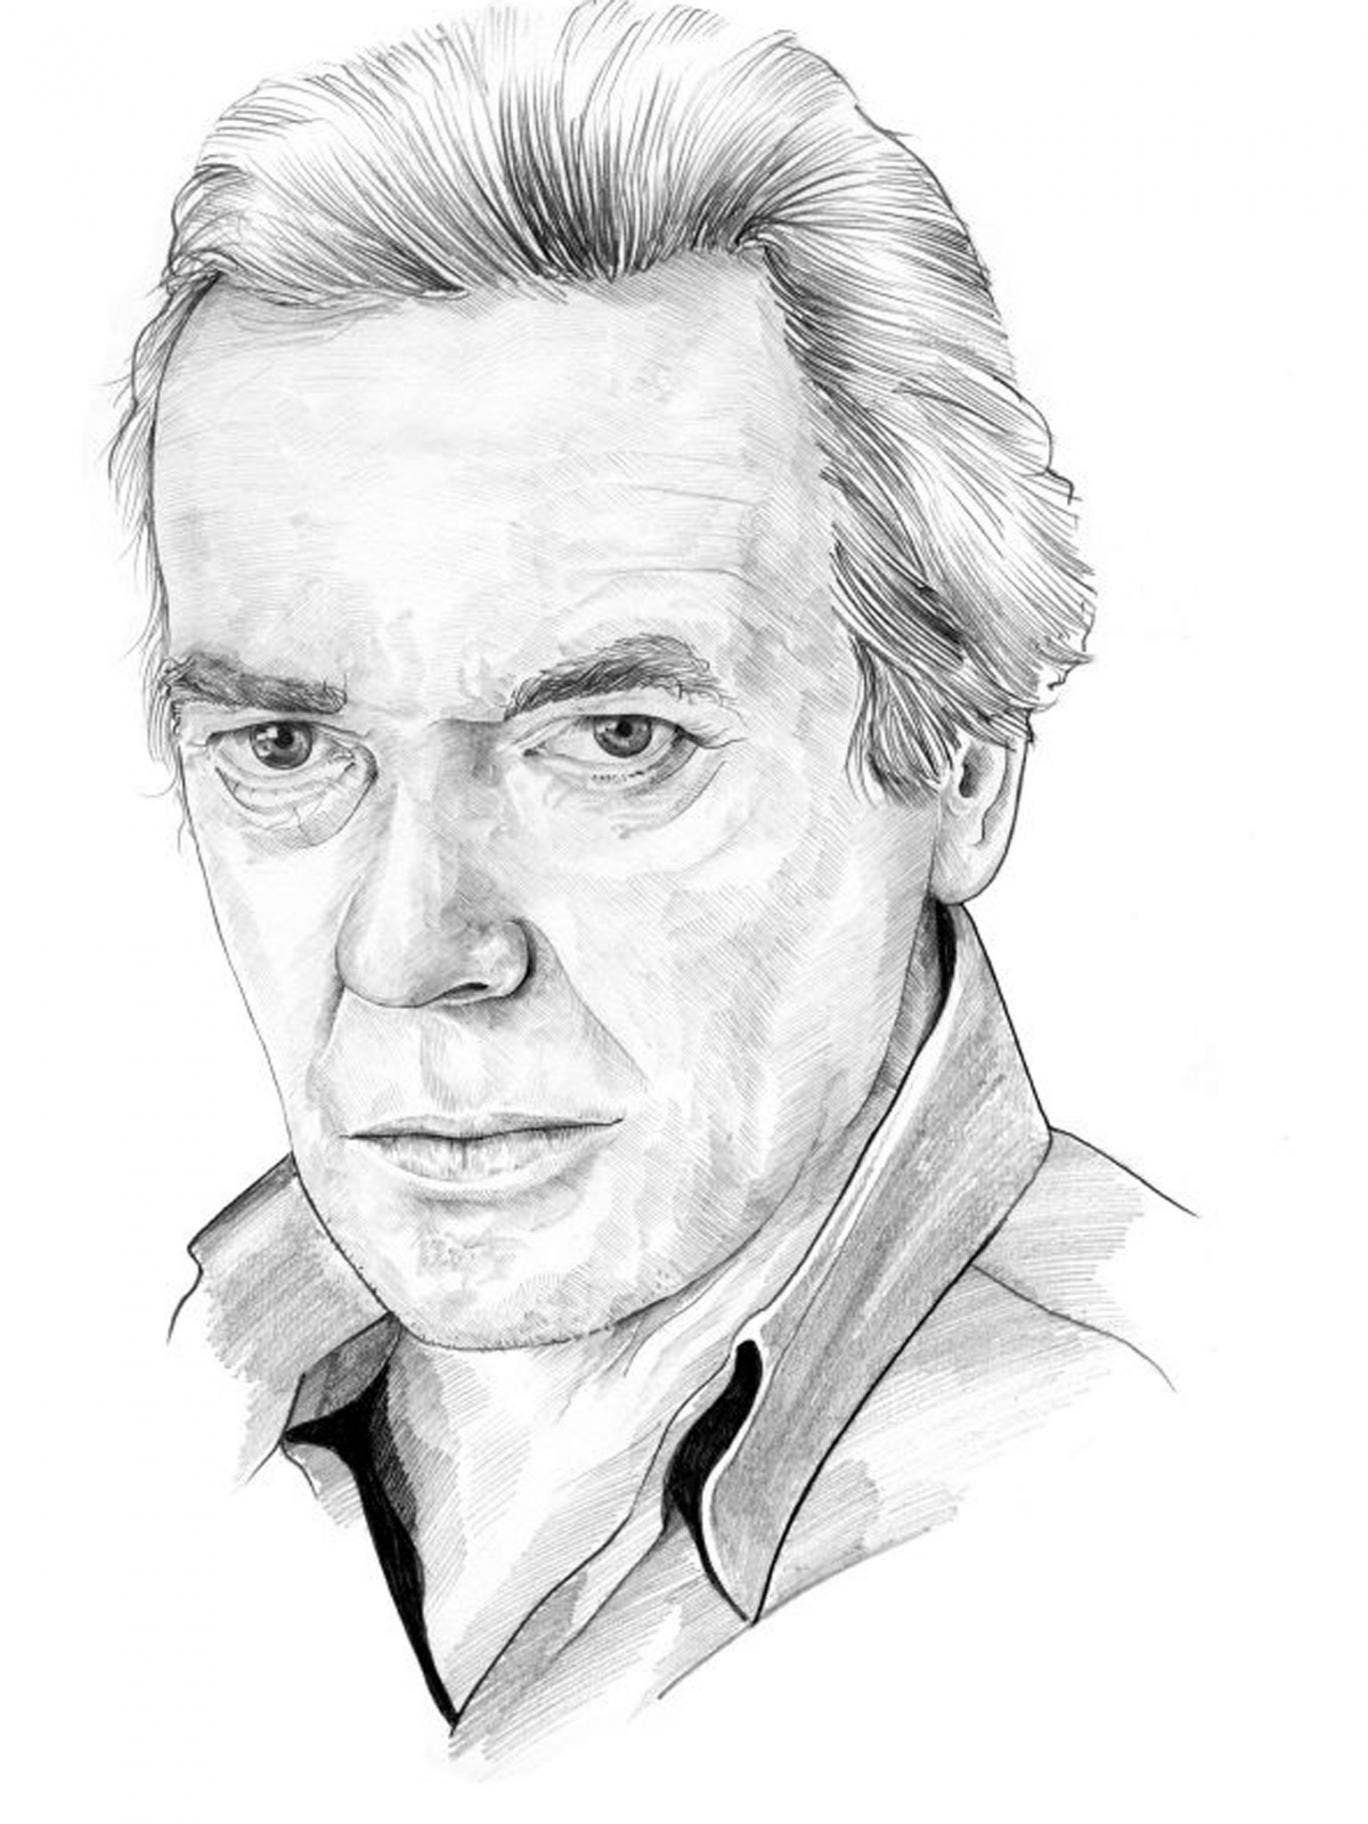 Martin Amis: More than 40 years a novelist, he has lost none of his force in pronouncing on the way we live